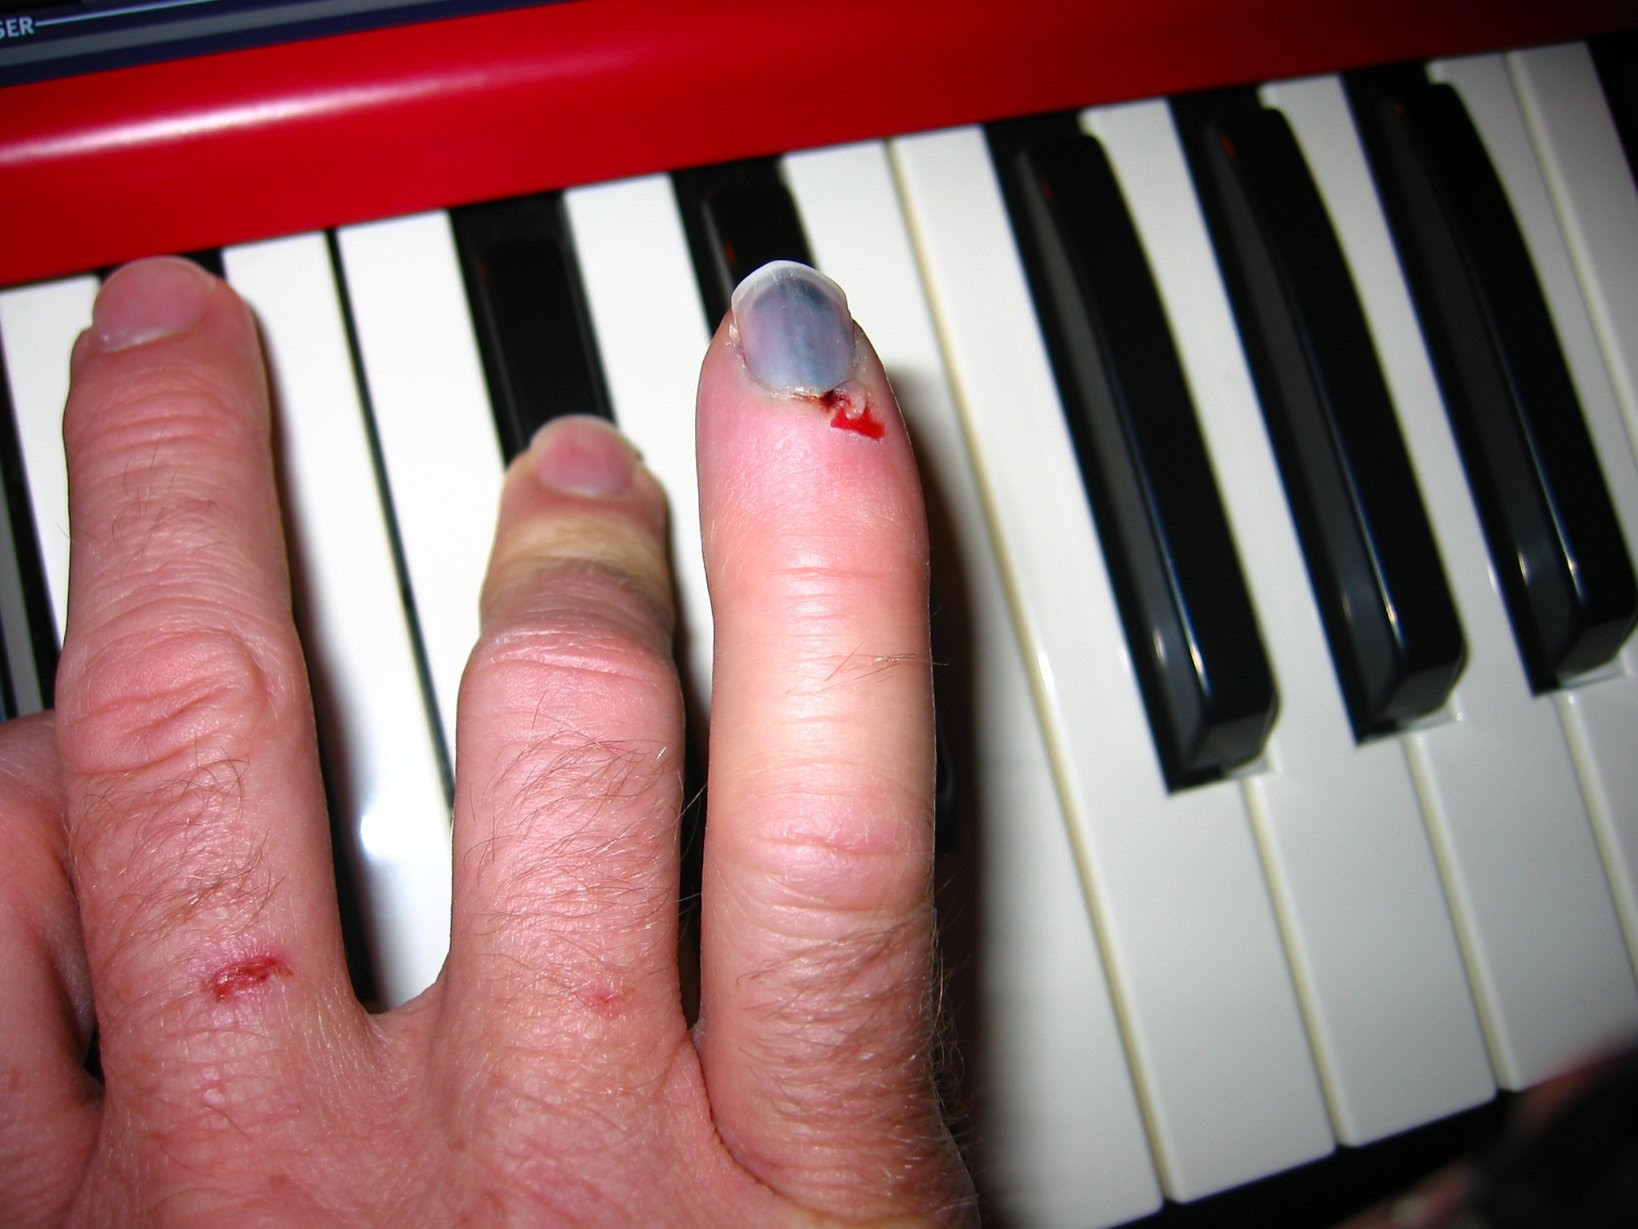 m1 smashed pinky on Nord electro 2 - soul amp